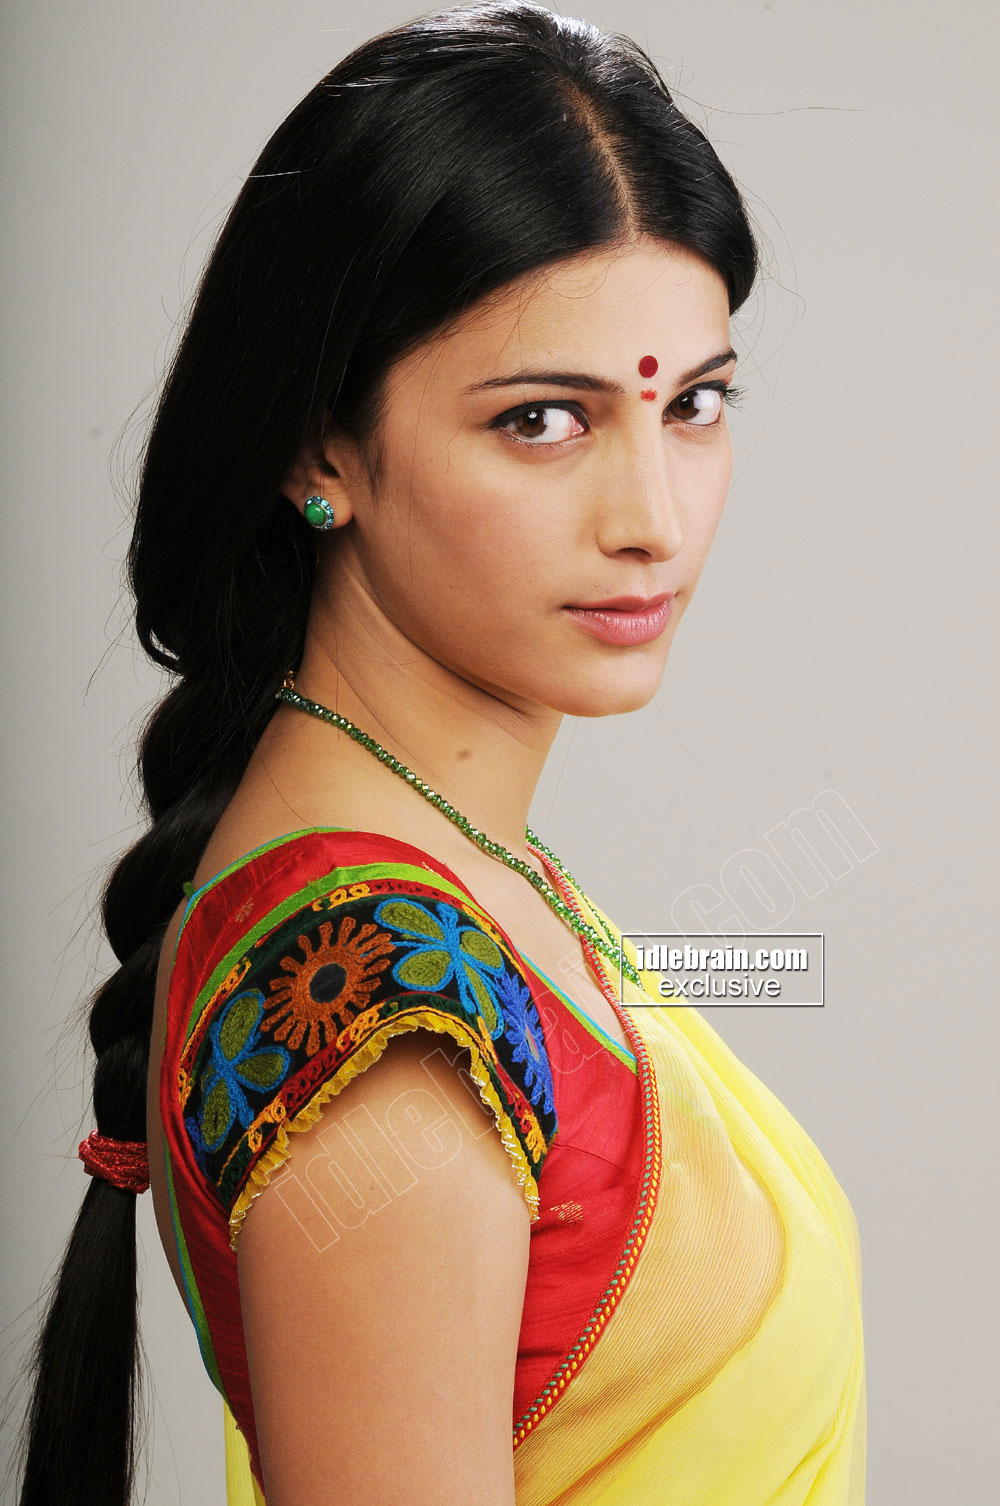 You are at idlebrain.com > Photo Gallery > Heroines > Shruthi Hassan ...: www.idlebrain.com/movie/photogallery/shruthihassan32/pages/image040...